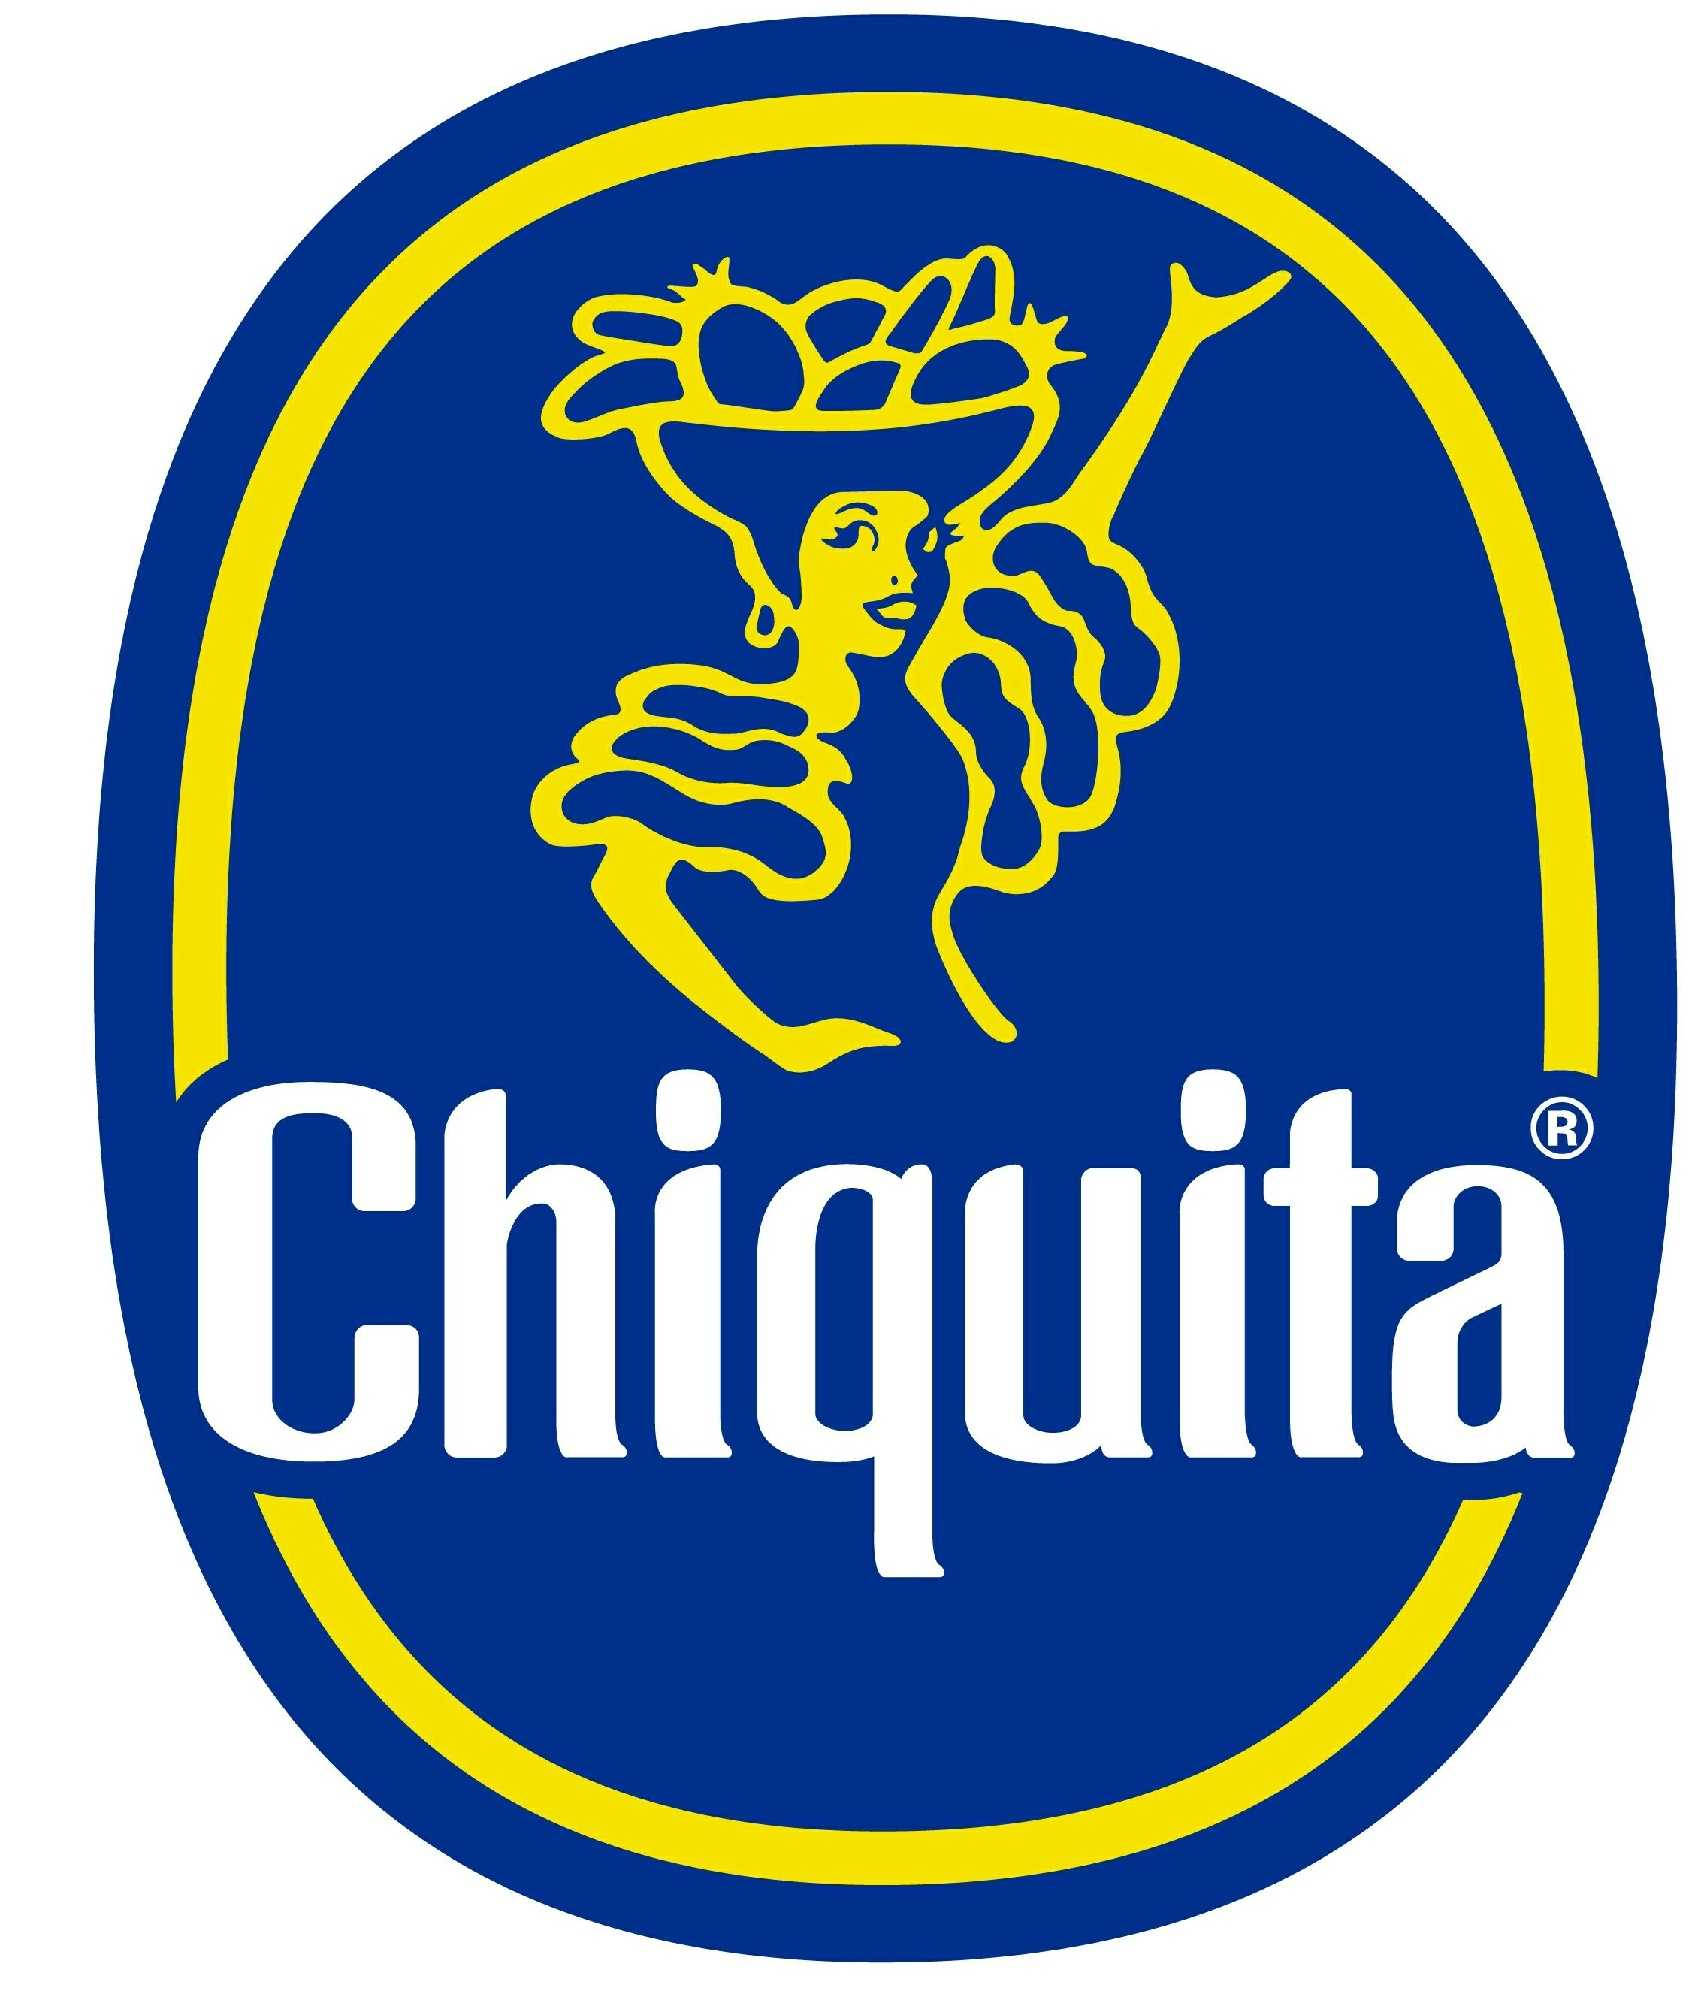 chiquita Think of bananas and you probably think of chiquita and the familiar blue sticker for good reason we were the first company to brand the banana back in 1944, when we introduced miss chiquita.